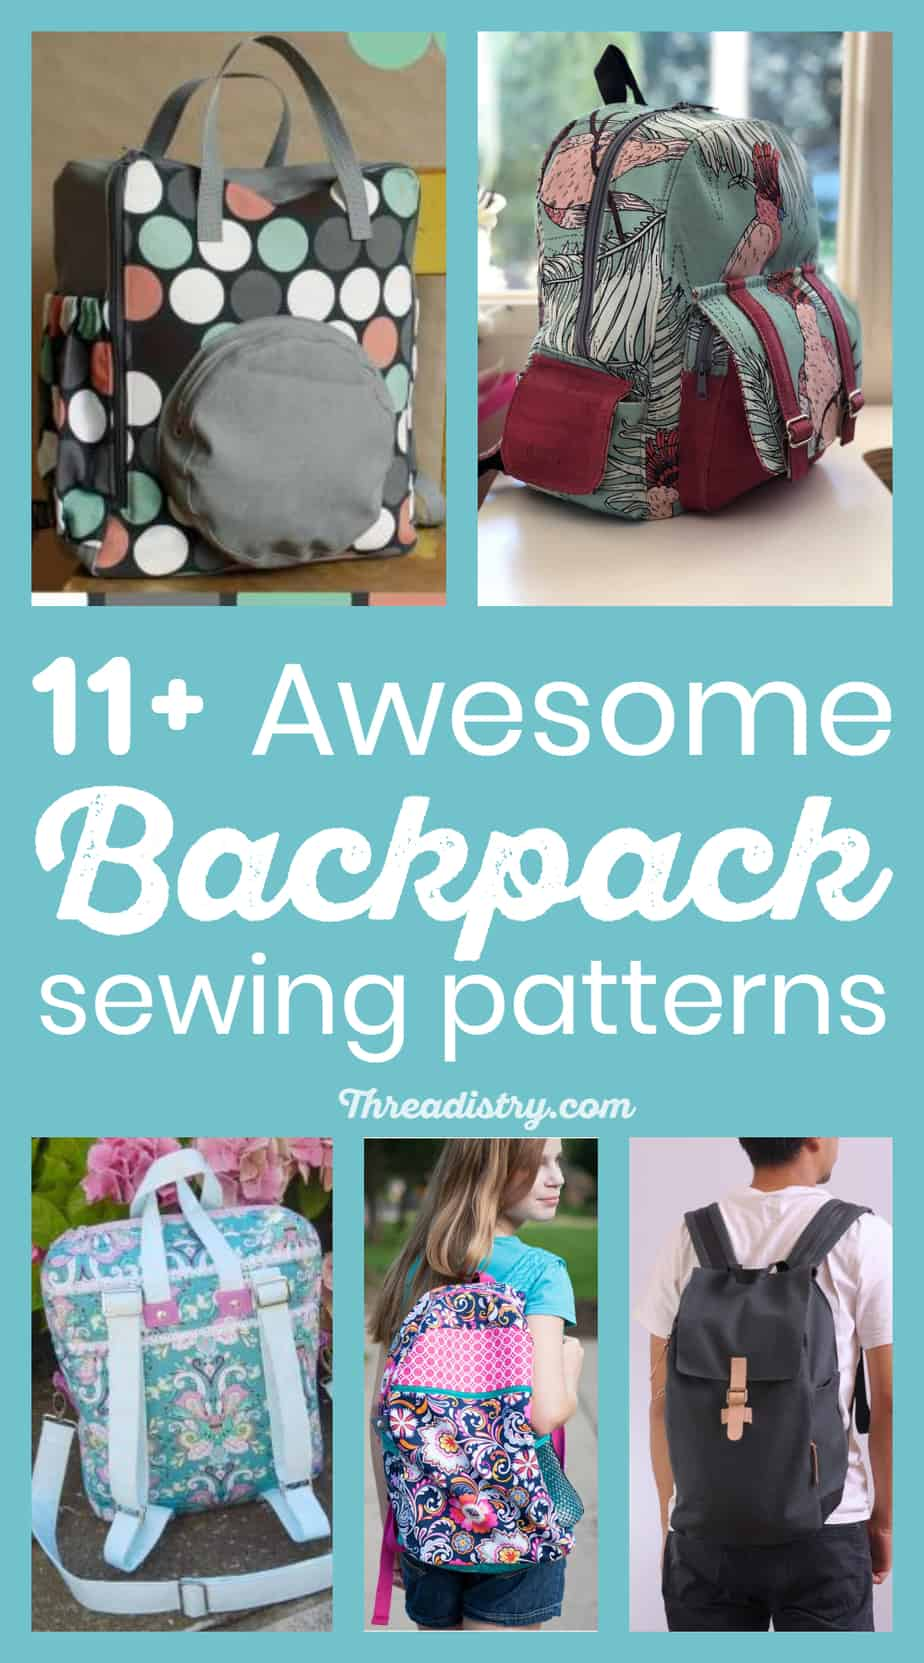 Awesome backpack sewing patterns - collage of different backpack sewing patterns